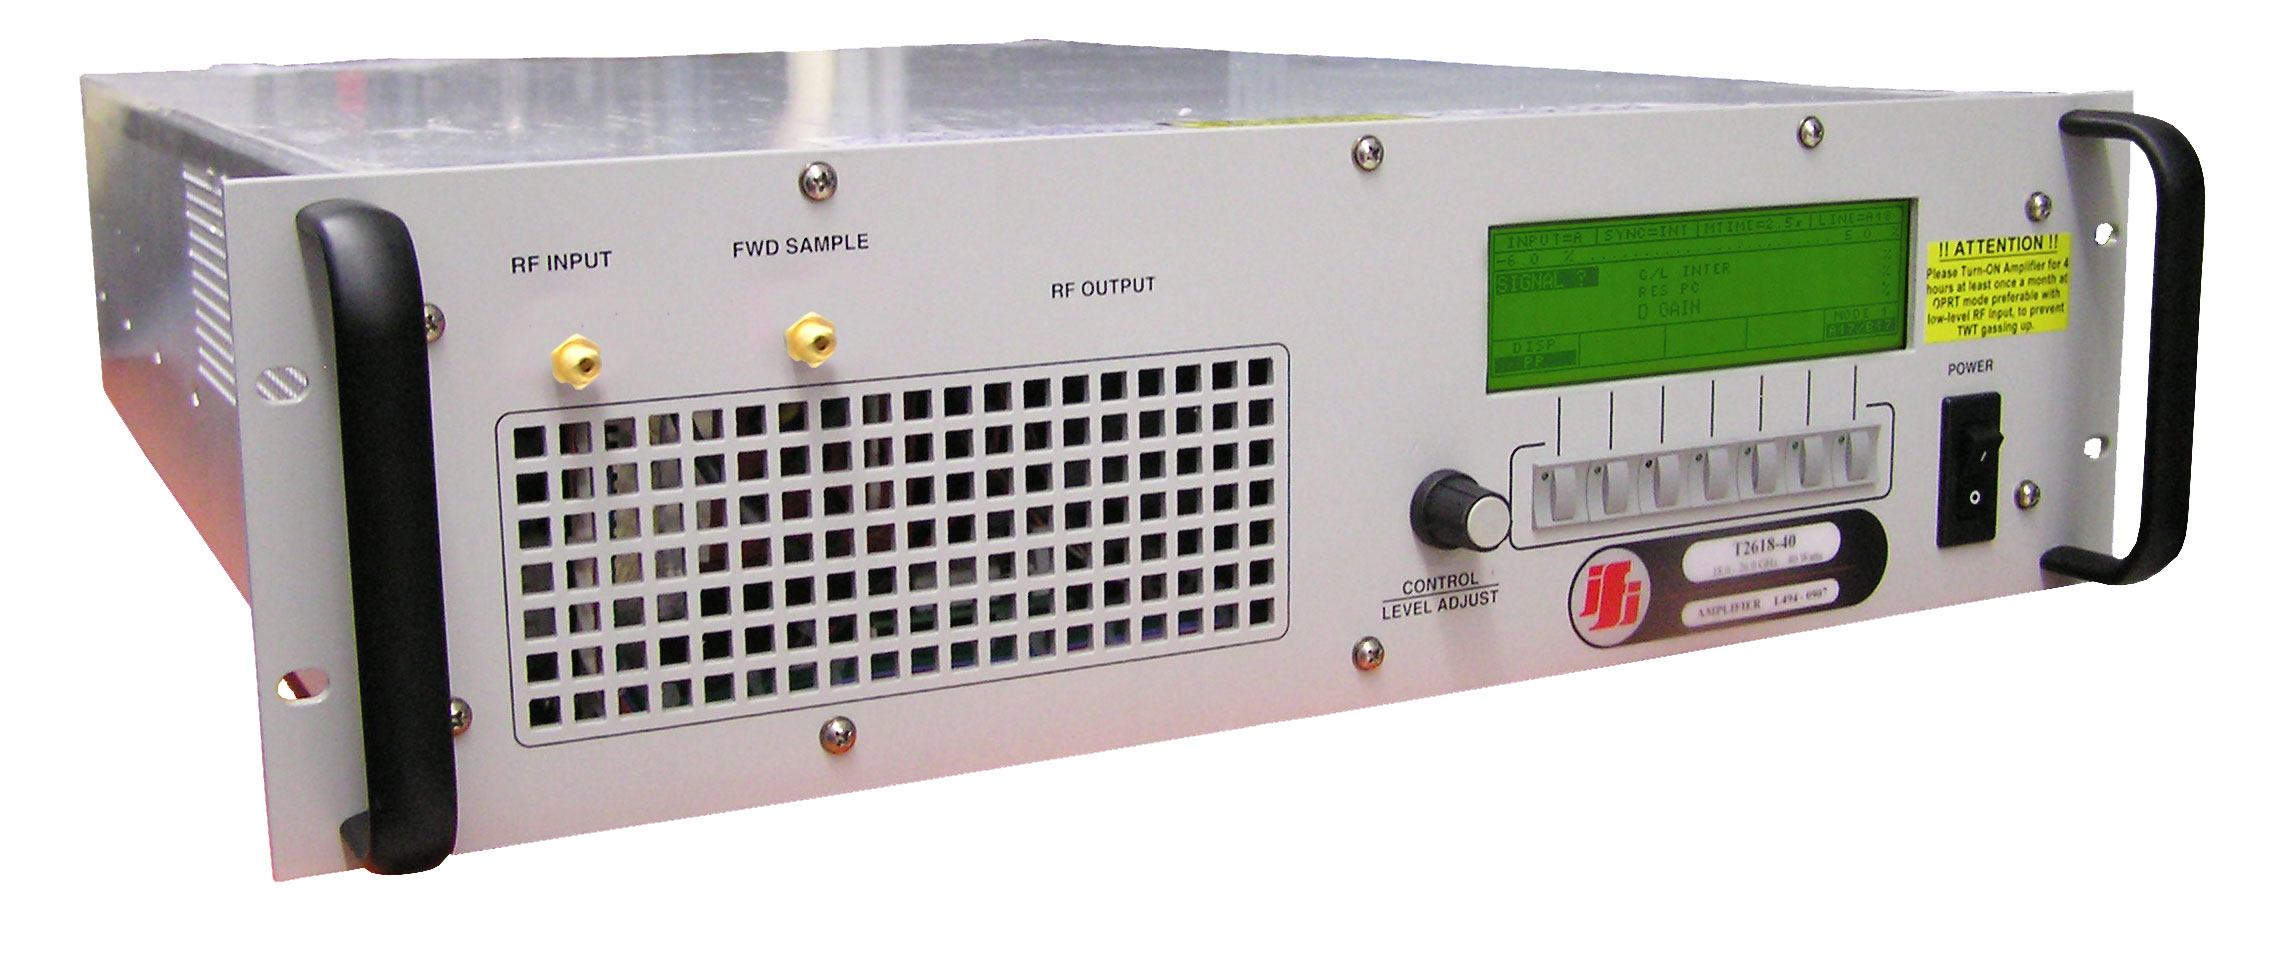 Rent IFI T2618-50 Millimeter TWT Amplifier 18 GHz - 26.5 GHz, 50 Watt